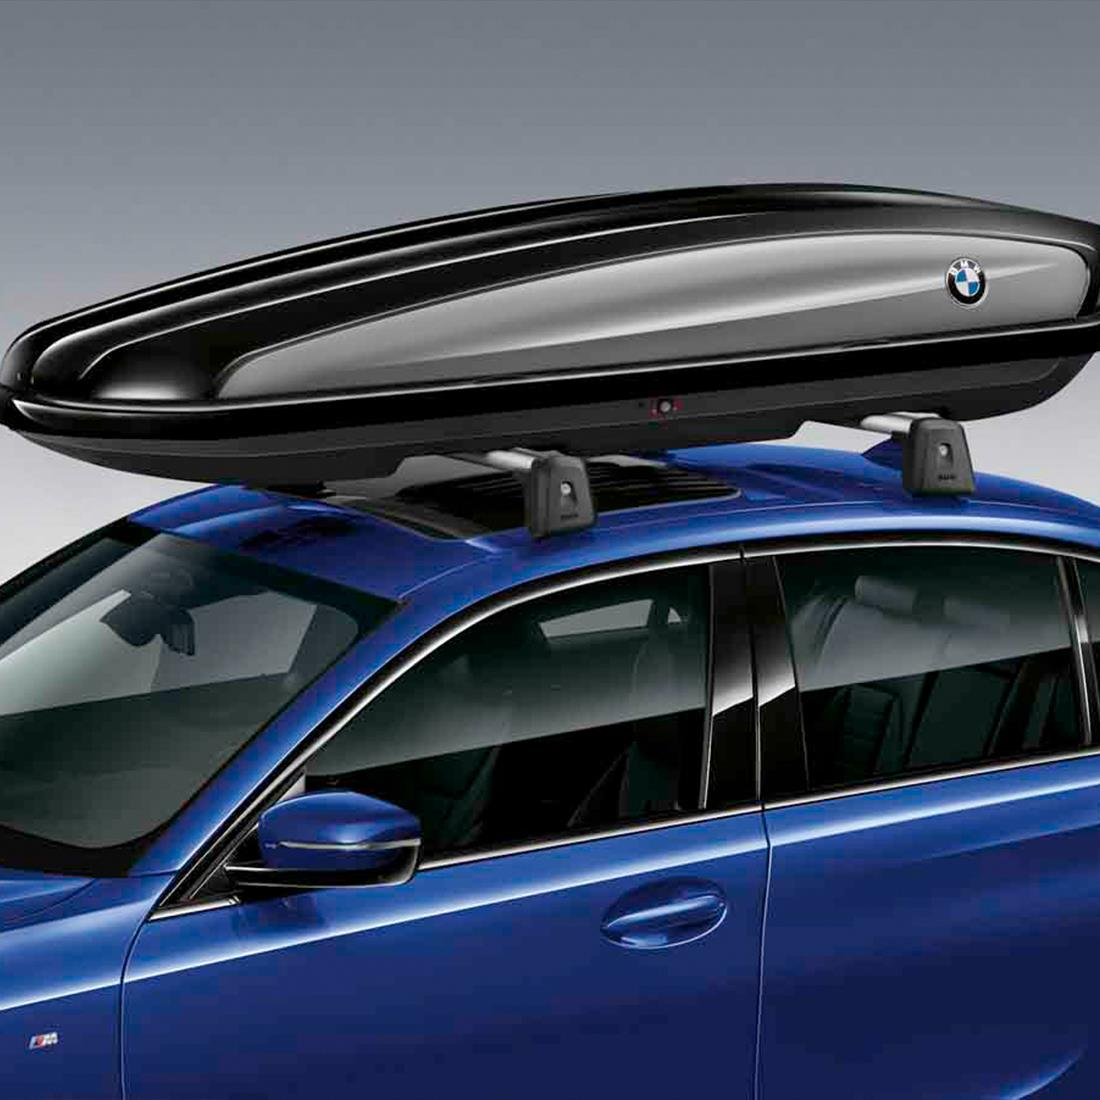 BMW 520 Liter Roof Box